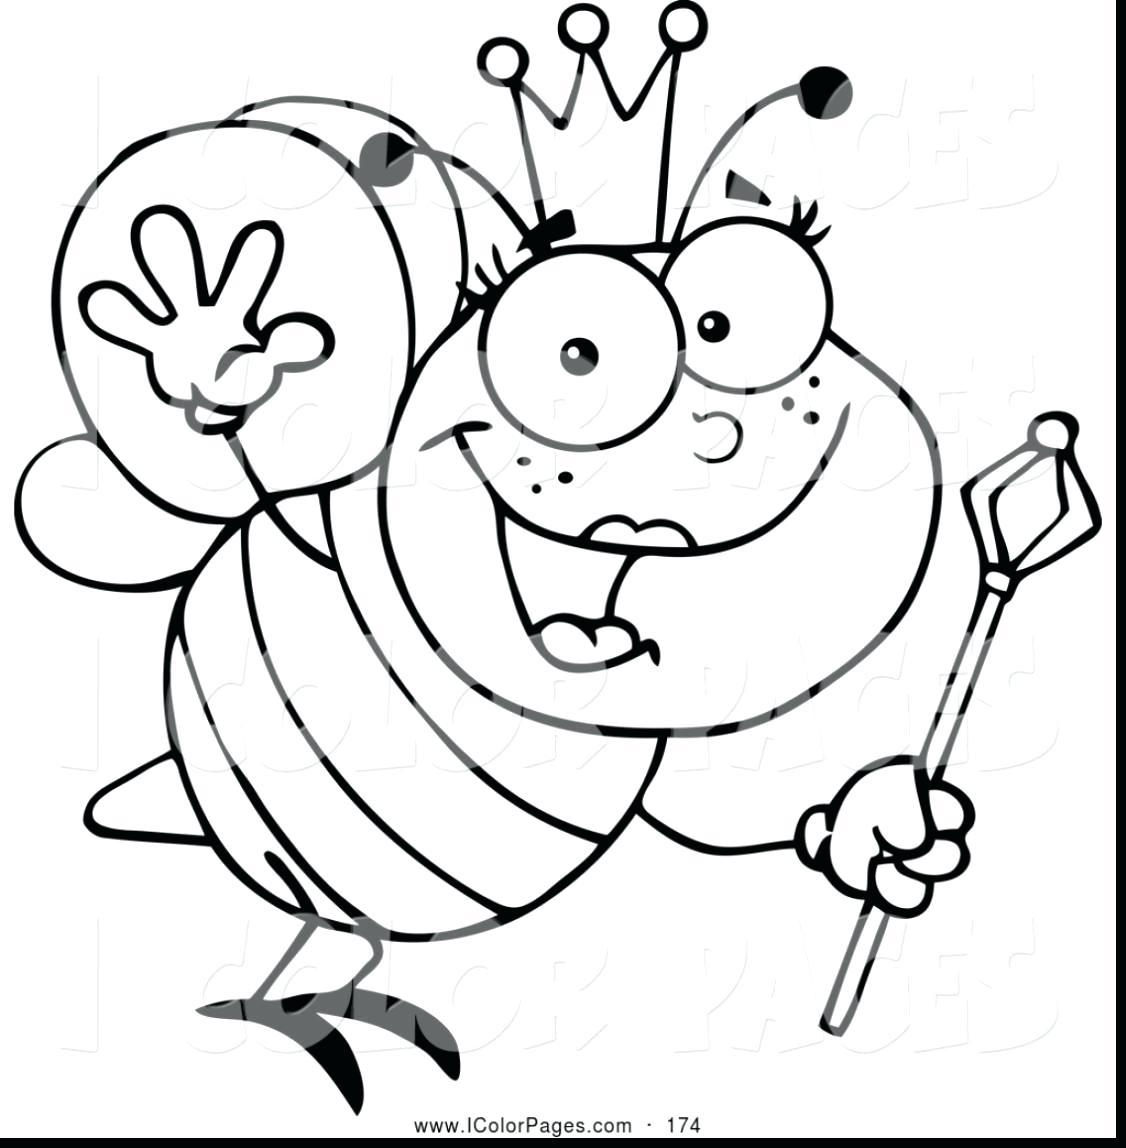 1126x1148 Coloring Pages Bumble Bee Coloring Page Bumblebee Transformer